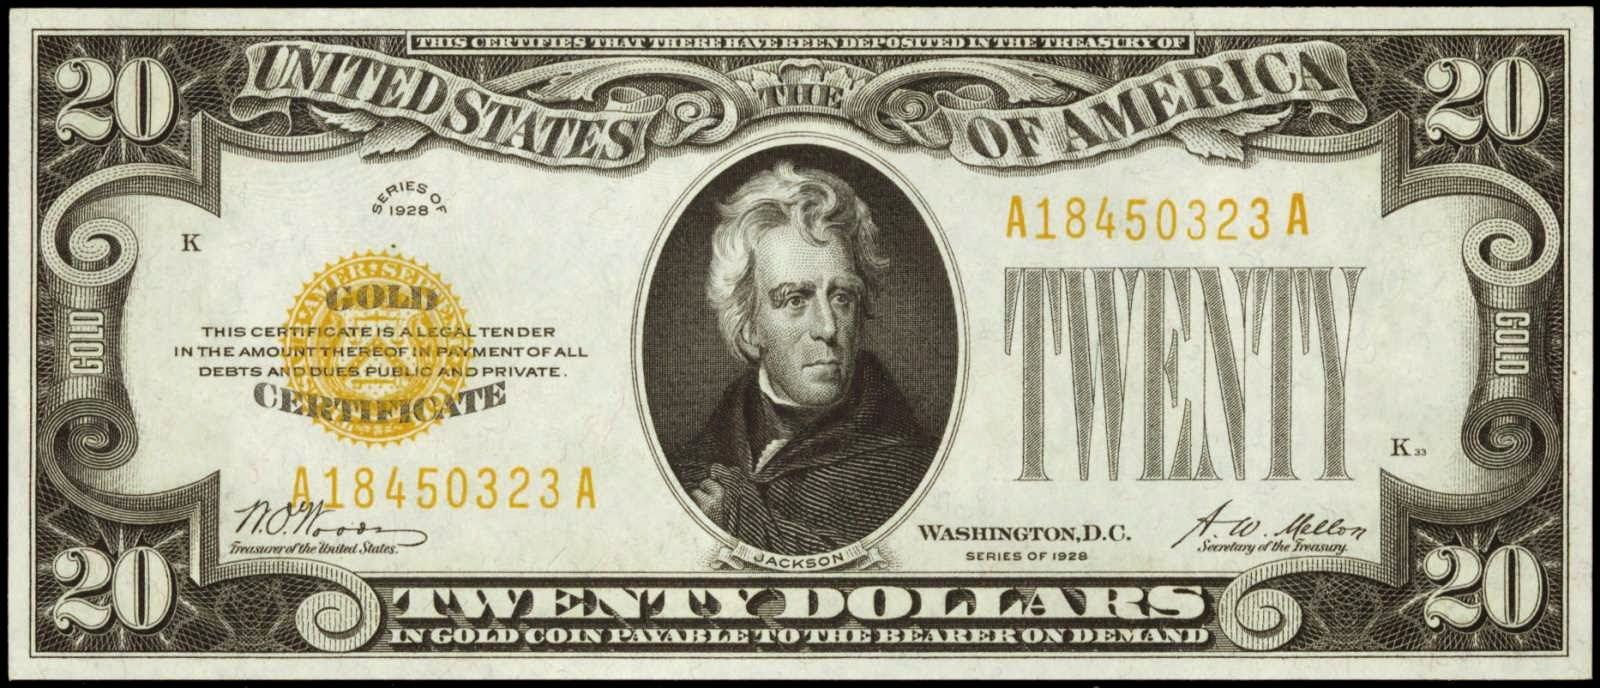 1928 20 dollar gold certificateworld banknotes coins pictures united states twenty dollar bill 1928 20 dollar gold certificate small size twenty obverse portrait of andrew jackson u 1betcityfo Images